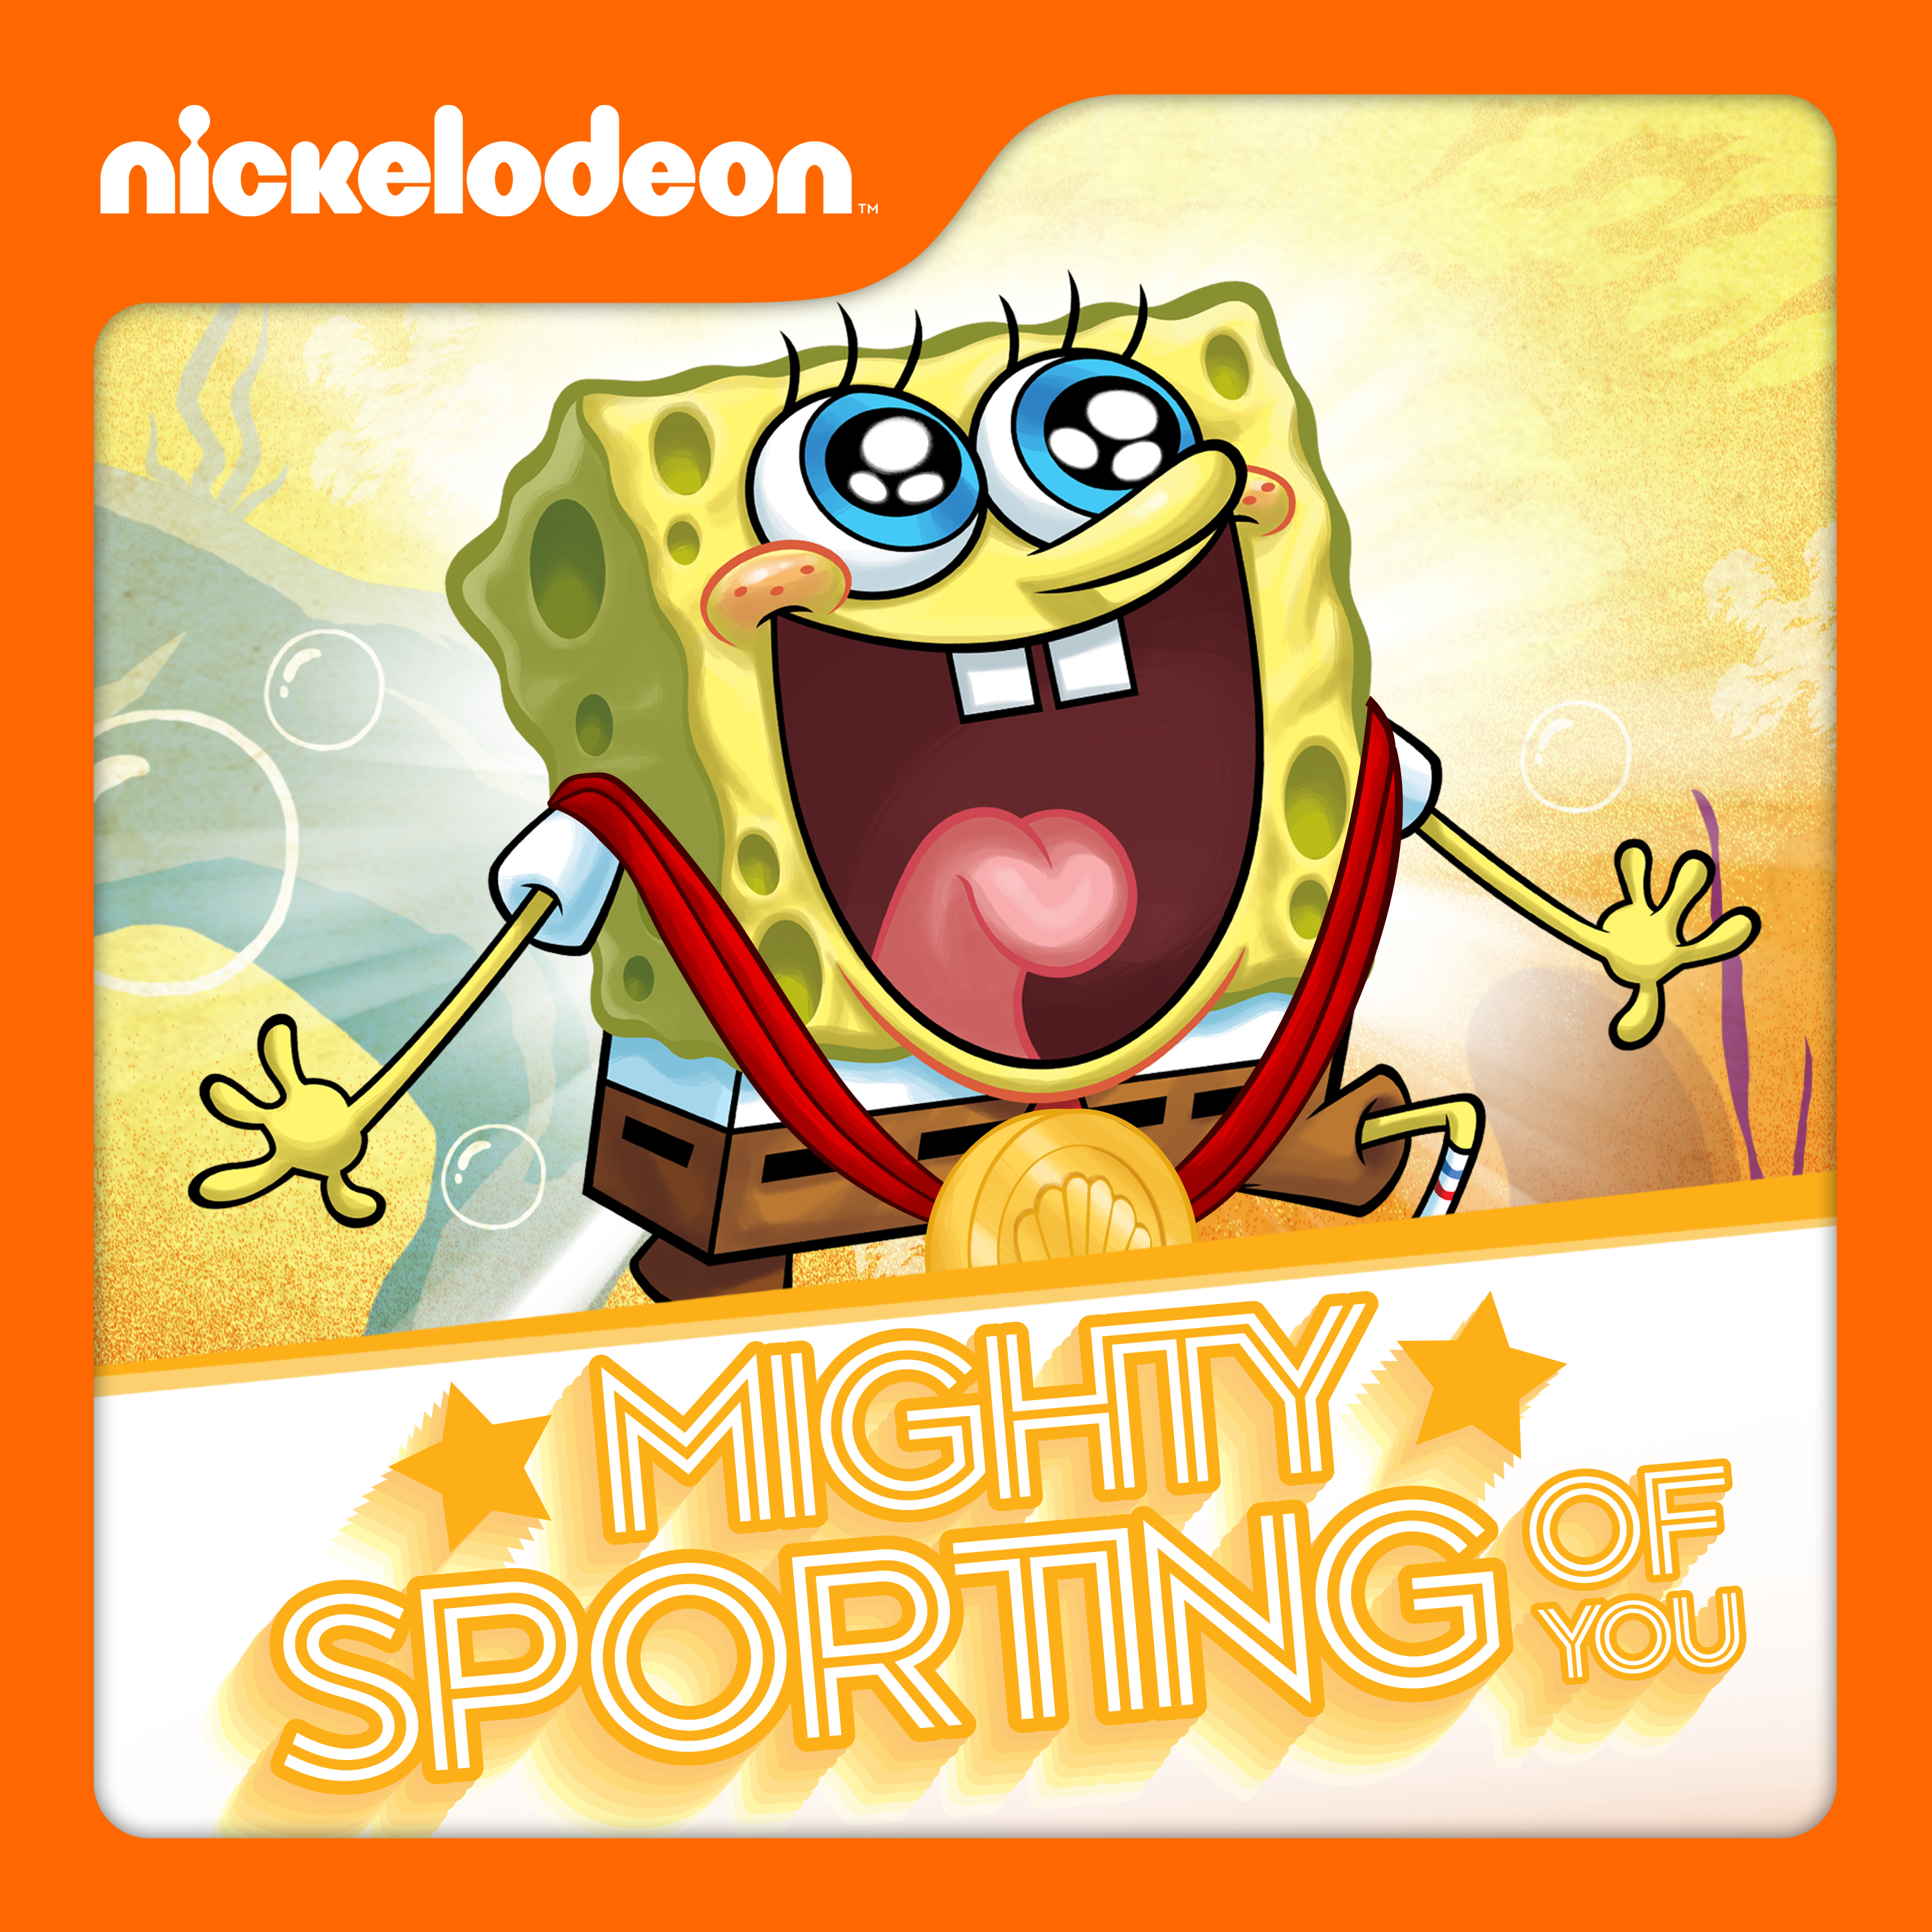 Mighty Sporting of You